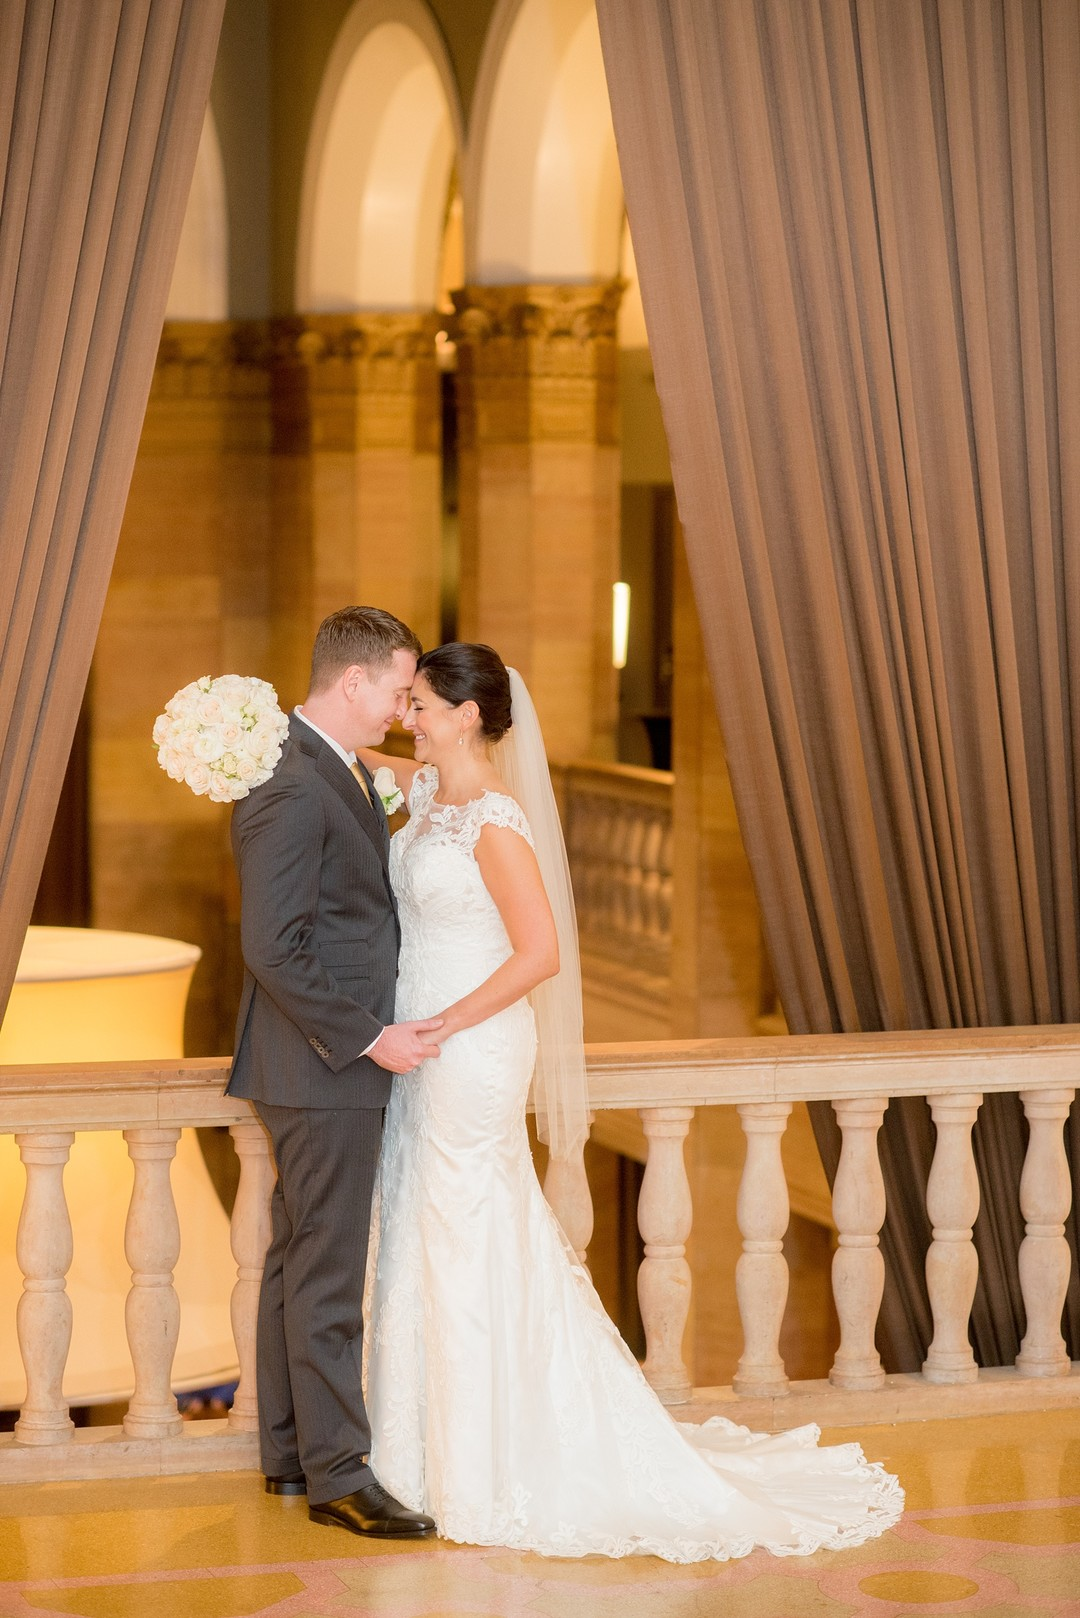 Romantic downtown Chicago wedding at The Rookery captured by Mikkel Paige Photography. See more Chicago wedding ideas at CHItheeWED.com!